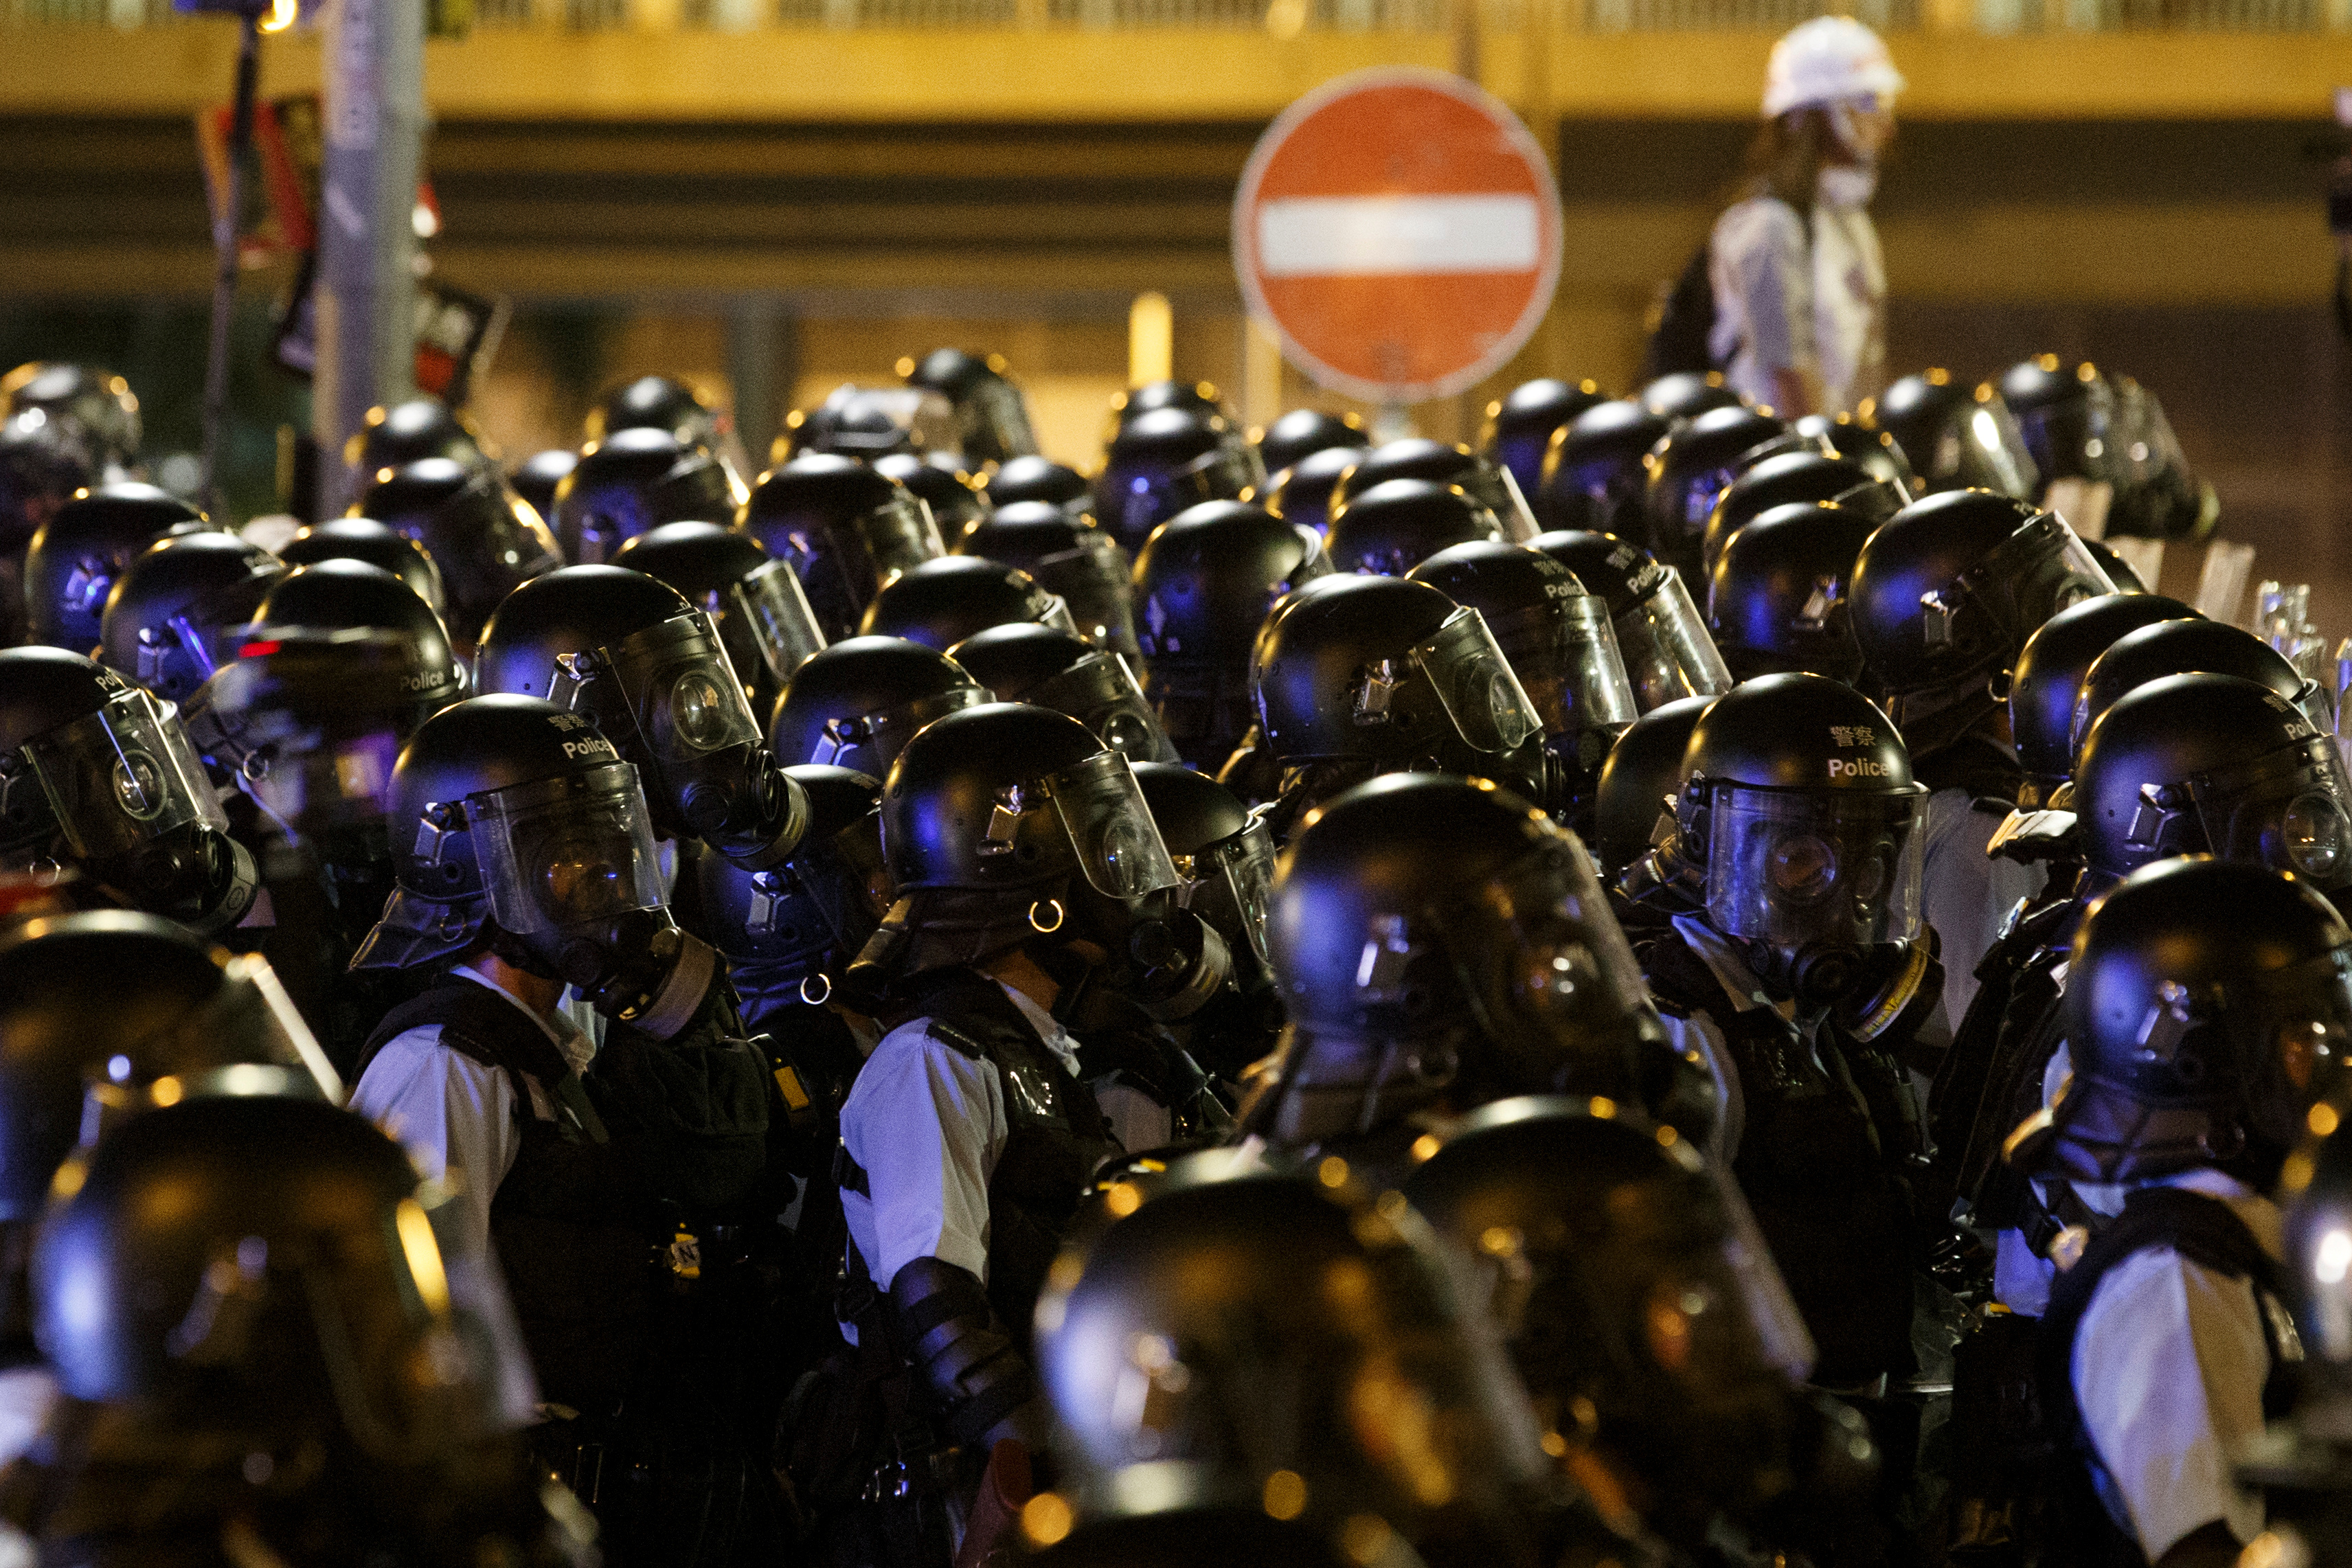 FILE PHOTO: Riot police clear the streets outside the Legislative Council building, after protesters stormed the building on the anniversary of Hong Kong's handover to China, in Hong Kong, China July 2, 2019. REUTERS/Thomas Peter/File Photo